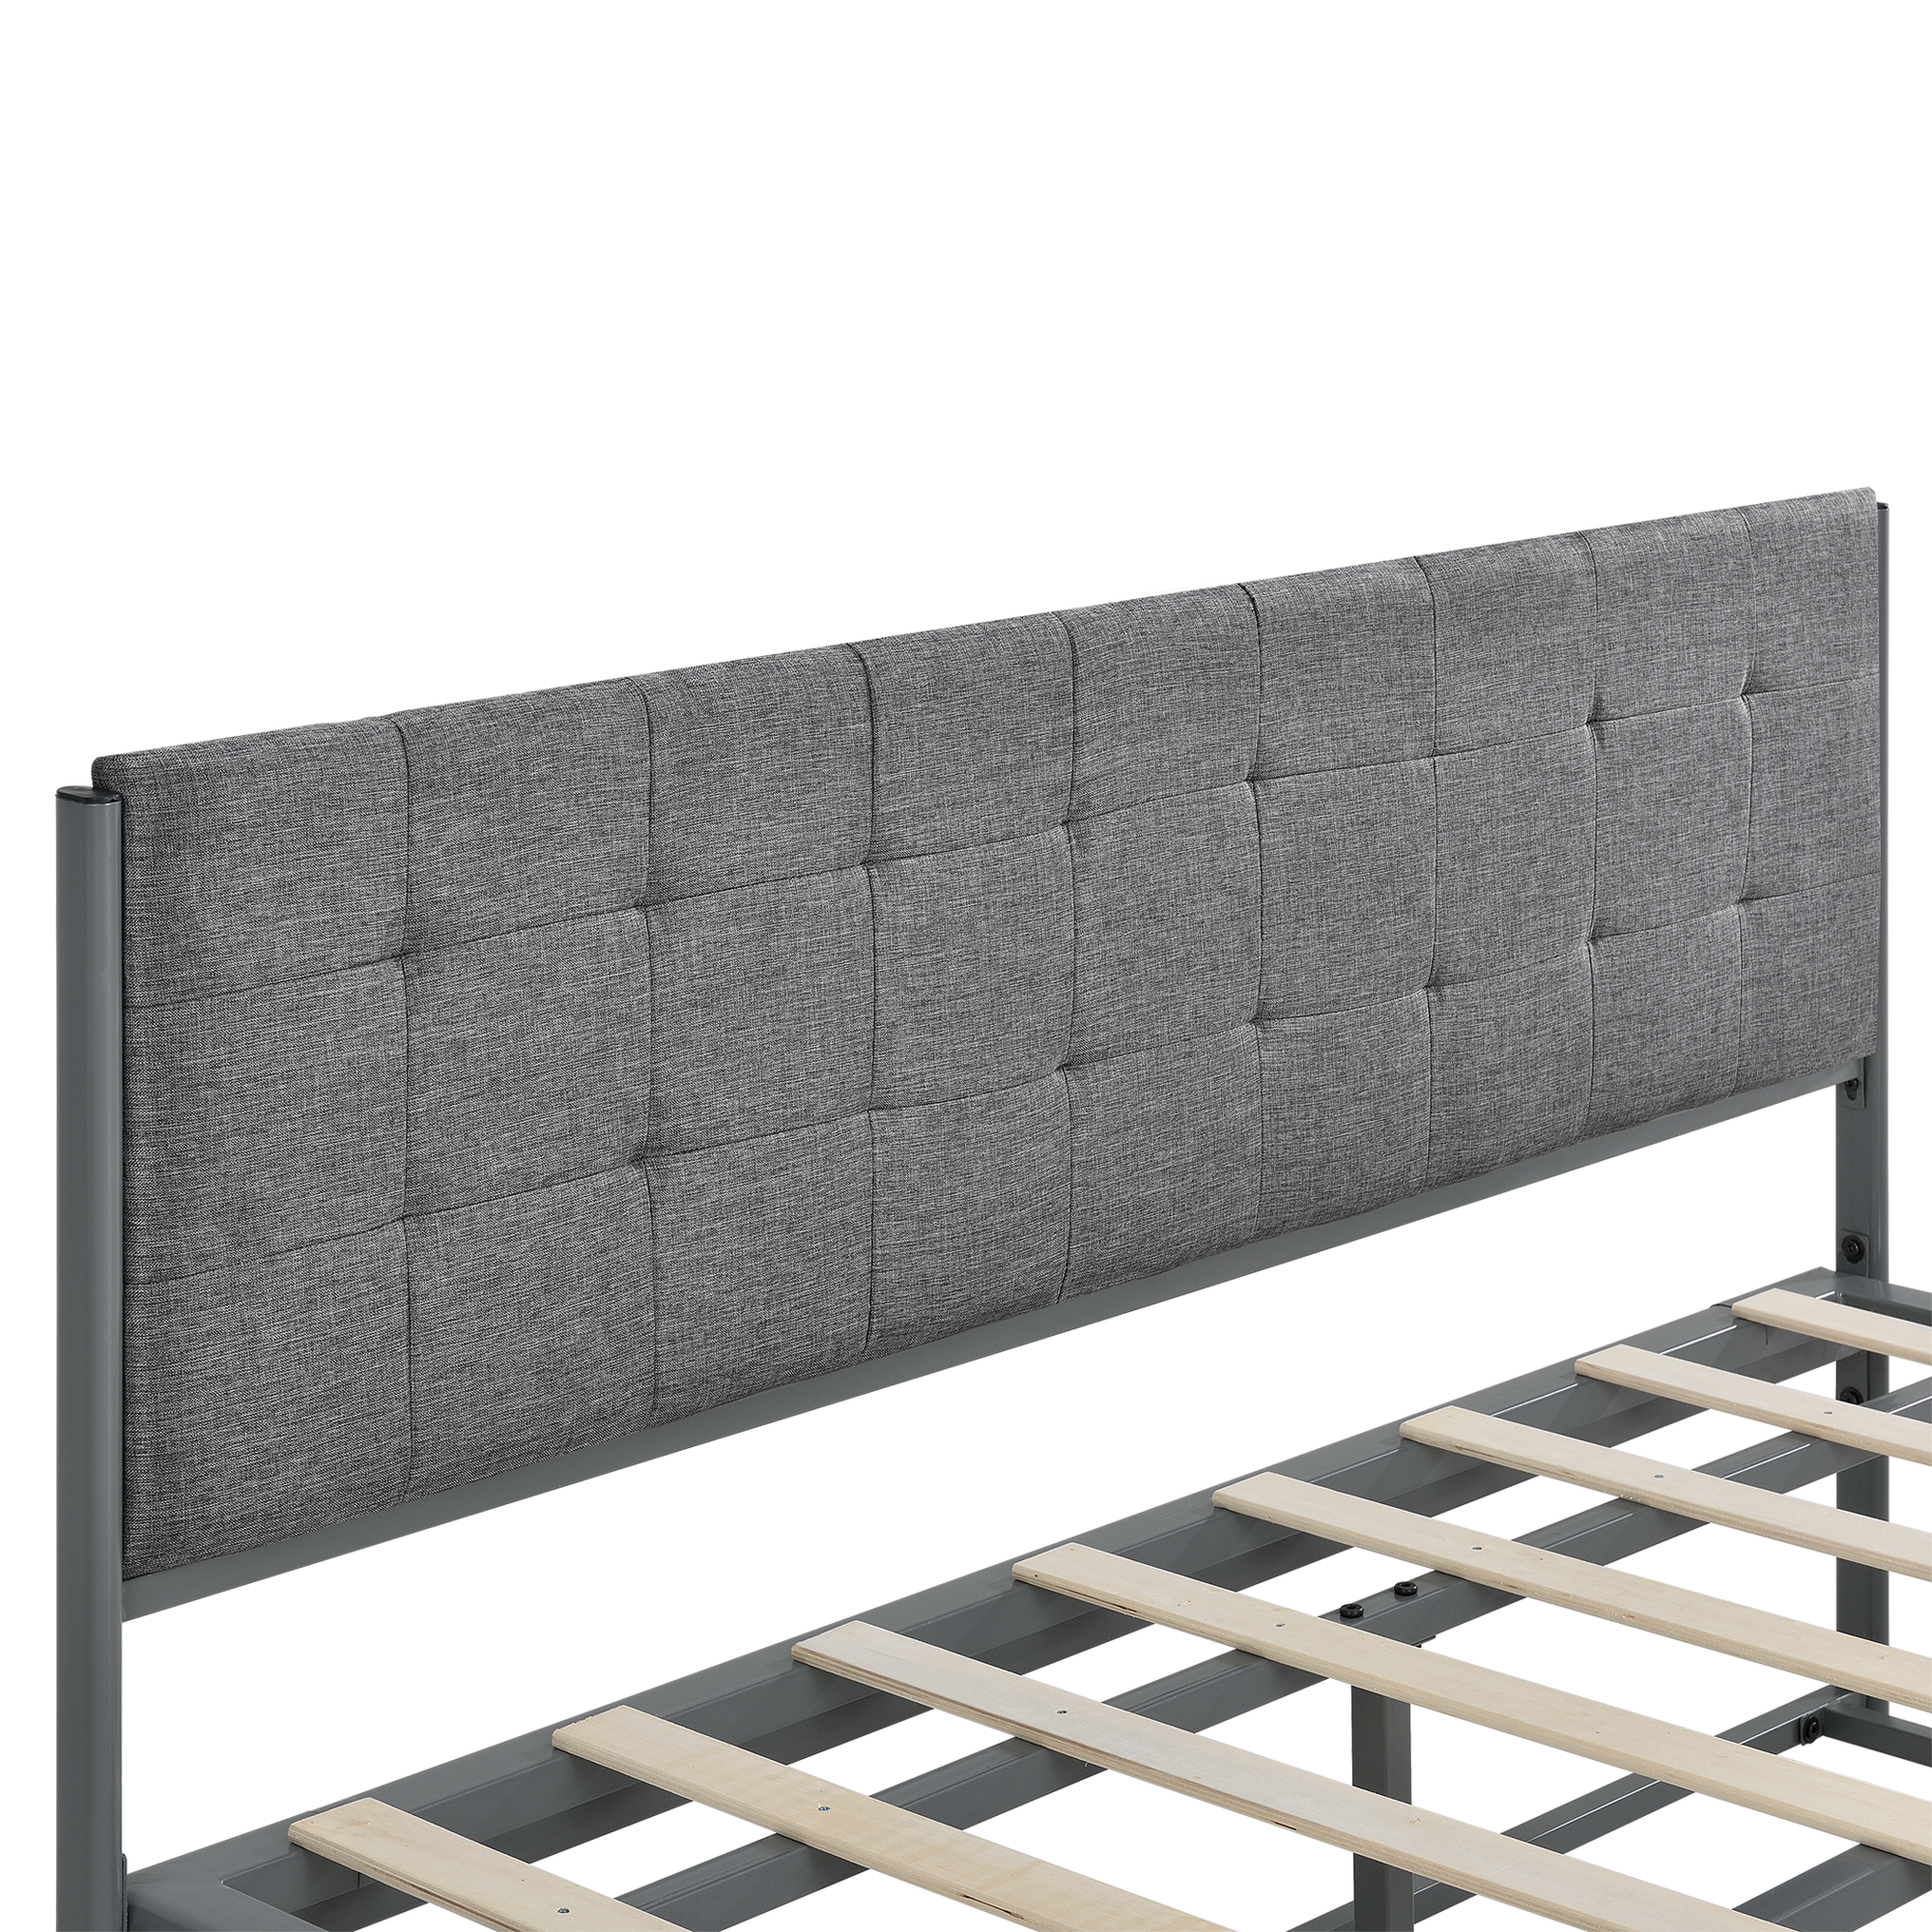 lit double et avec matela 140 x 200 cm gris avec cadre gris fonc ebay. Black Bedroom Furniture Sets. Home Design Ideas